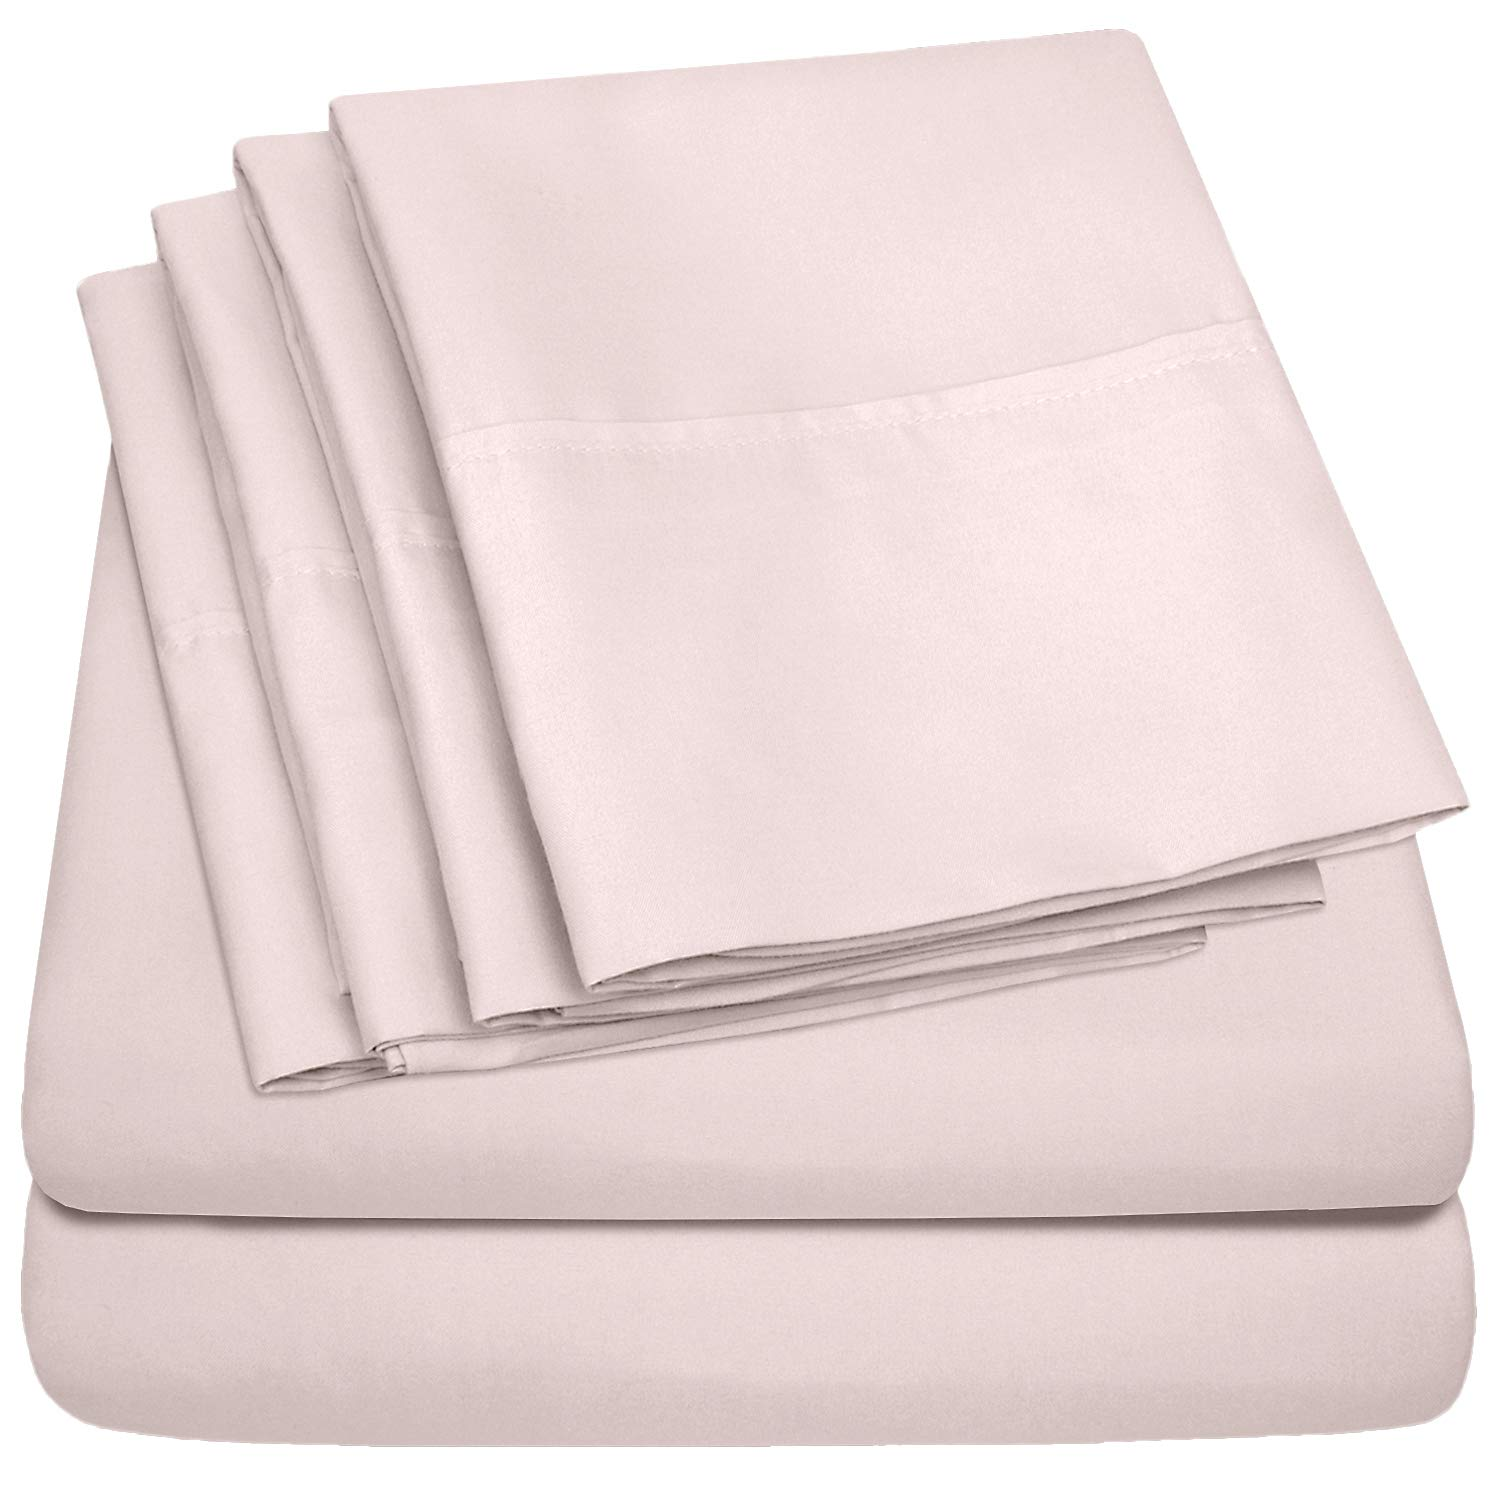 Queen Sheets Pale Pink - 6 Piece 1500 Thread Count Fine Brushed Microfiber Deep Pocket Queen Sheet Set Bedding - 2 Extra Pillow Cases, Great Value, Queen, Pale Pink